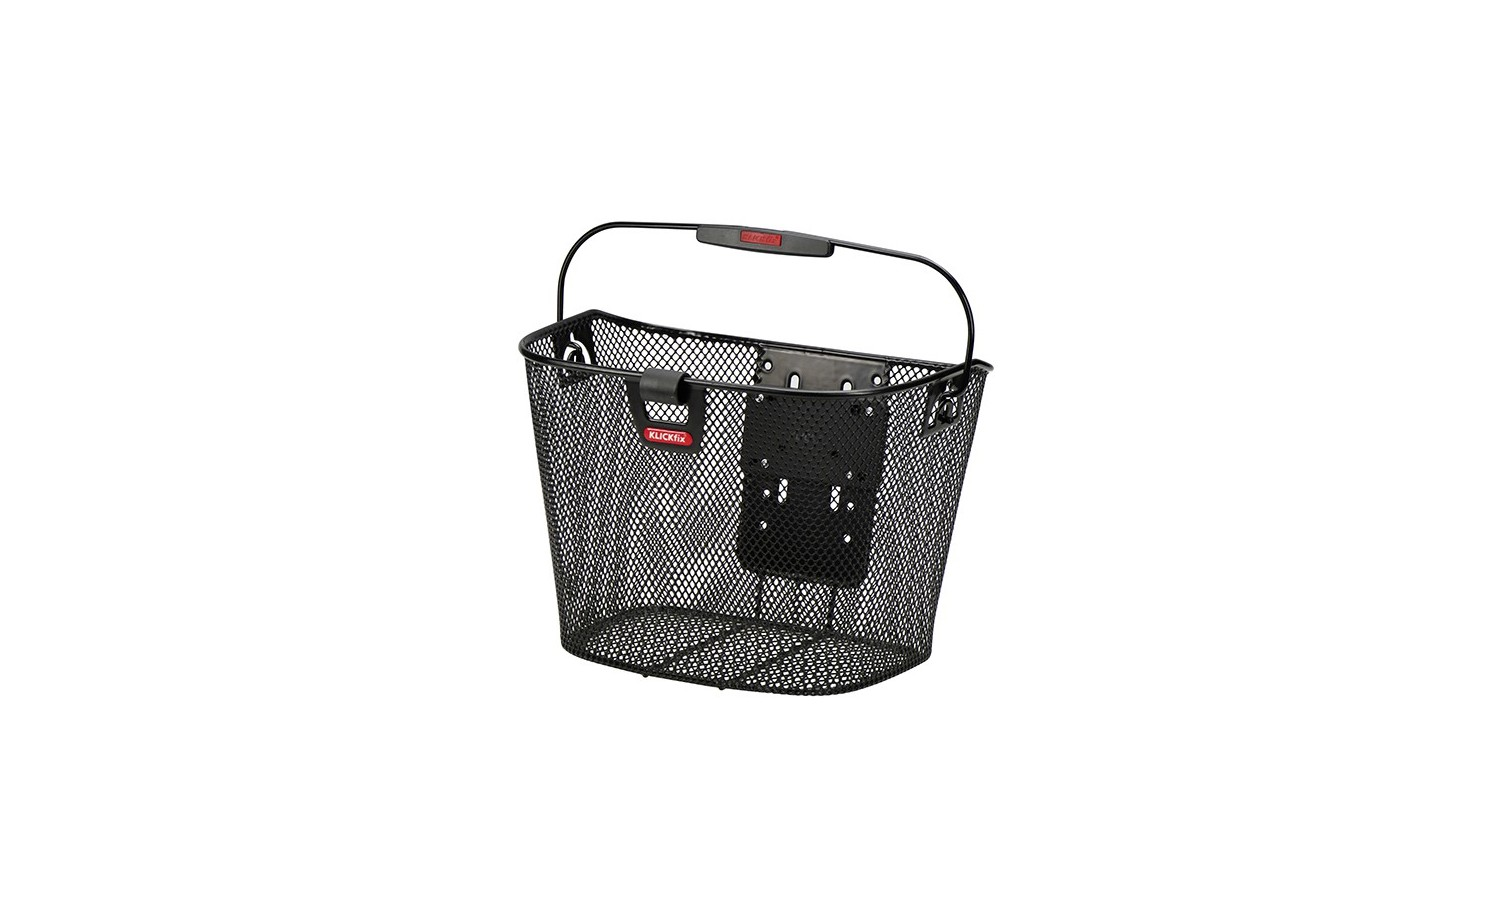 KLICKfix Uni basket with light clip